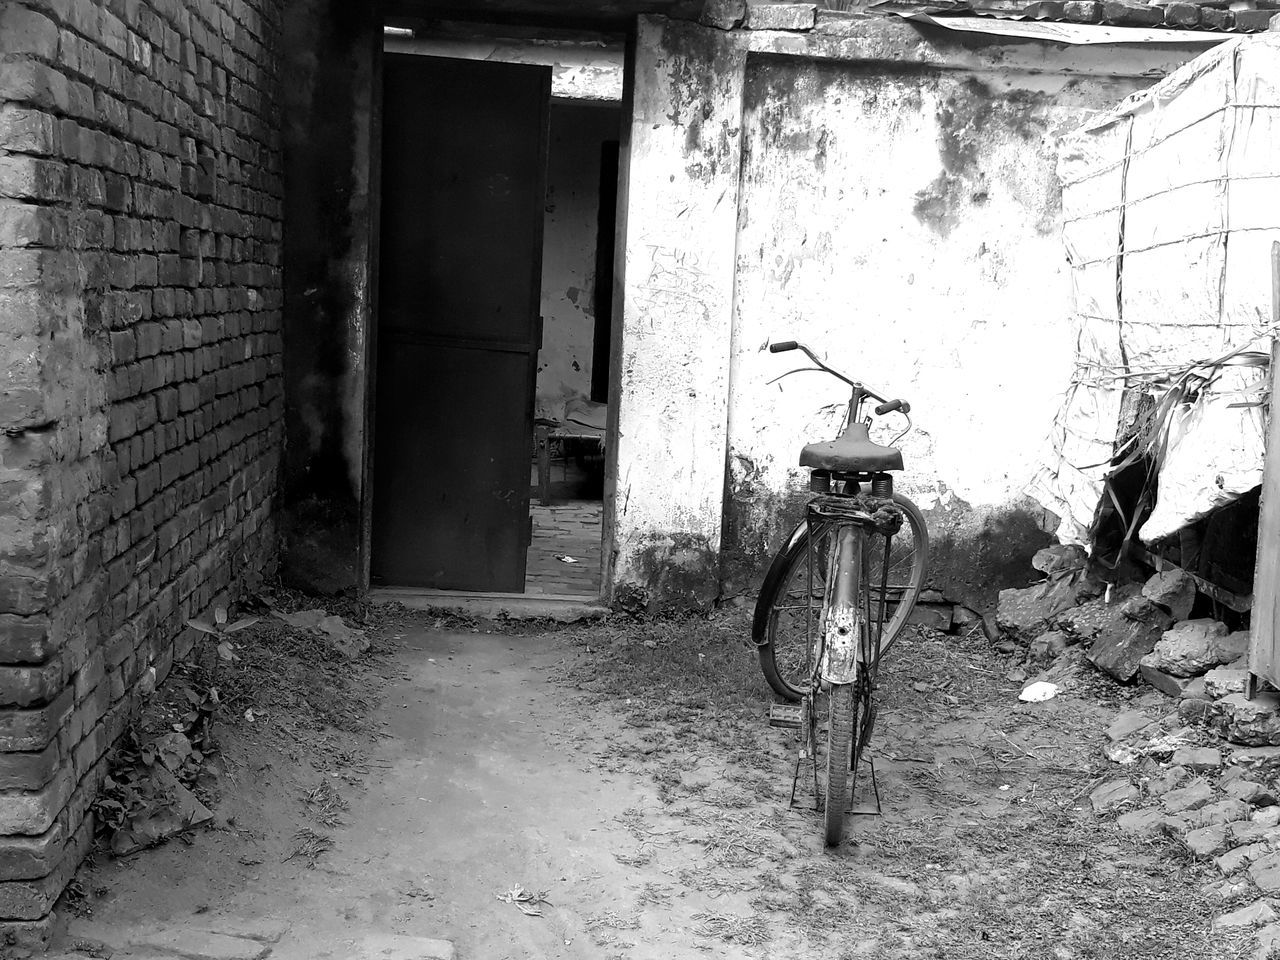 old, bicycle, built structure, architecture, abandoned, mode of transport, land vehicle, building exterior, day, no people, transportation, stationary, outdoors